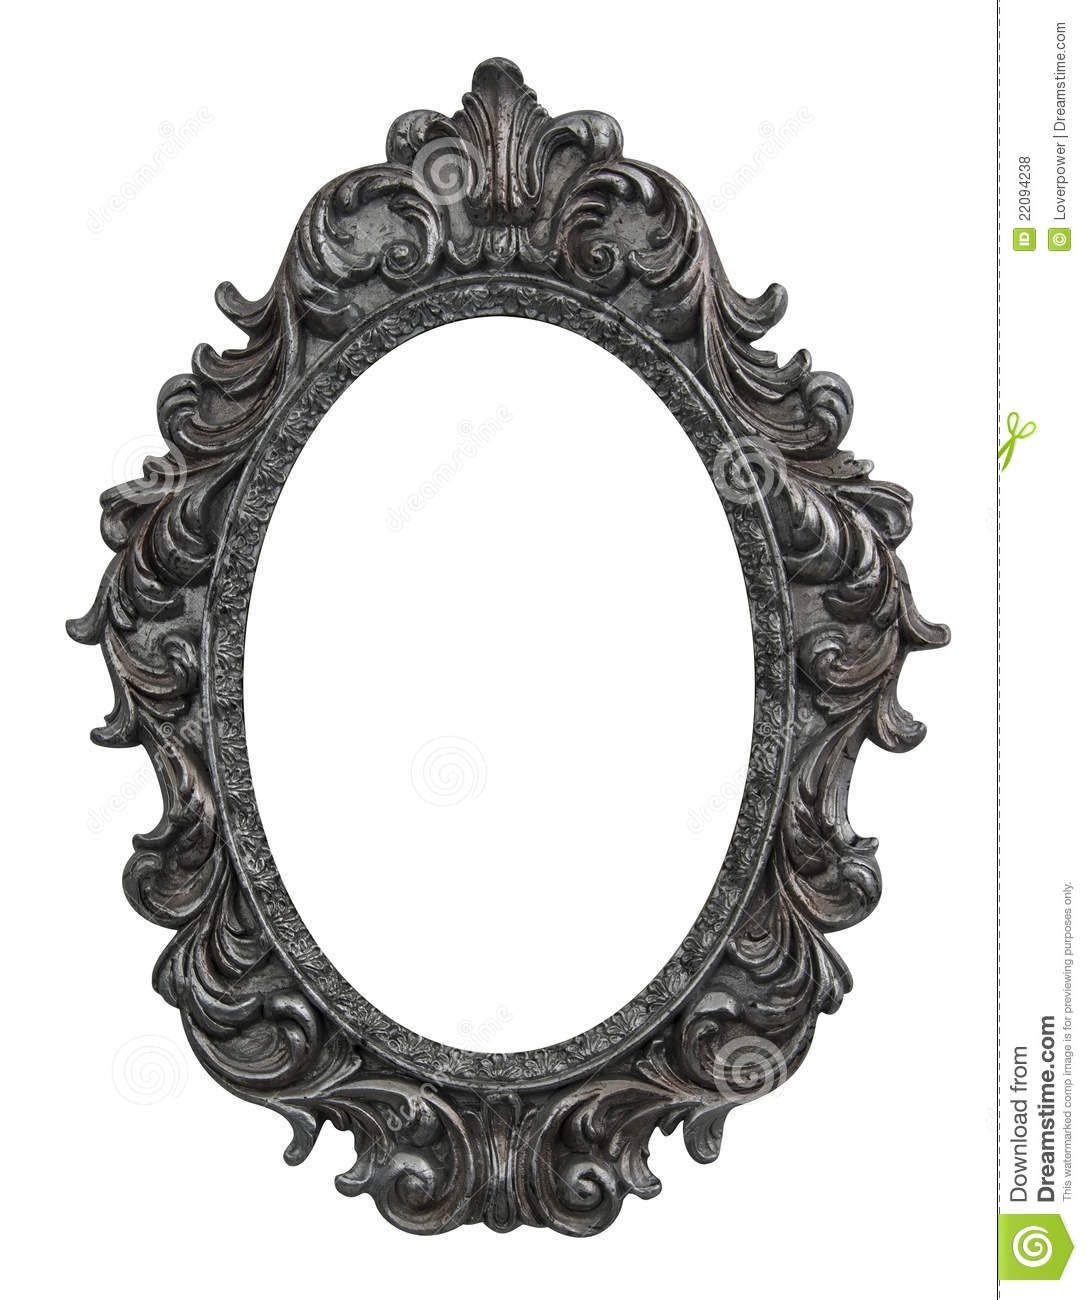 Mirror clipart baroque frame Http://thumbs  oval 22094238 frame